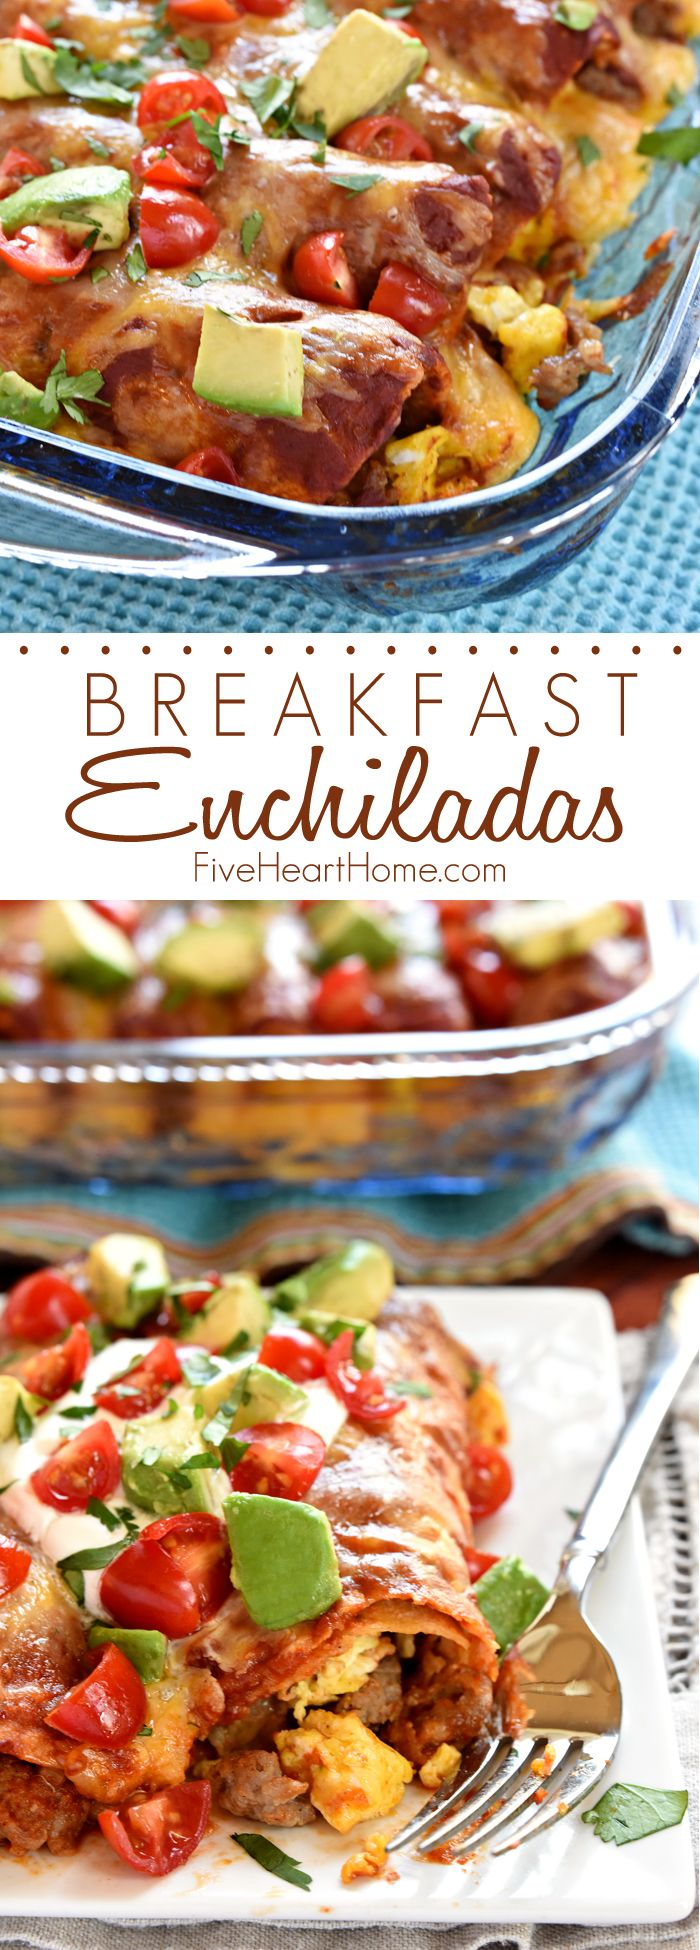 Breakfast Enchiladas ~ stuffed with sausage, eggs, and cheese, then topped with homemade red enchilada sauce, more cheese, and all of your favorite enchilada garnishes, these are even better than breakfast tacos! | FiveHeartHome.com